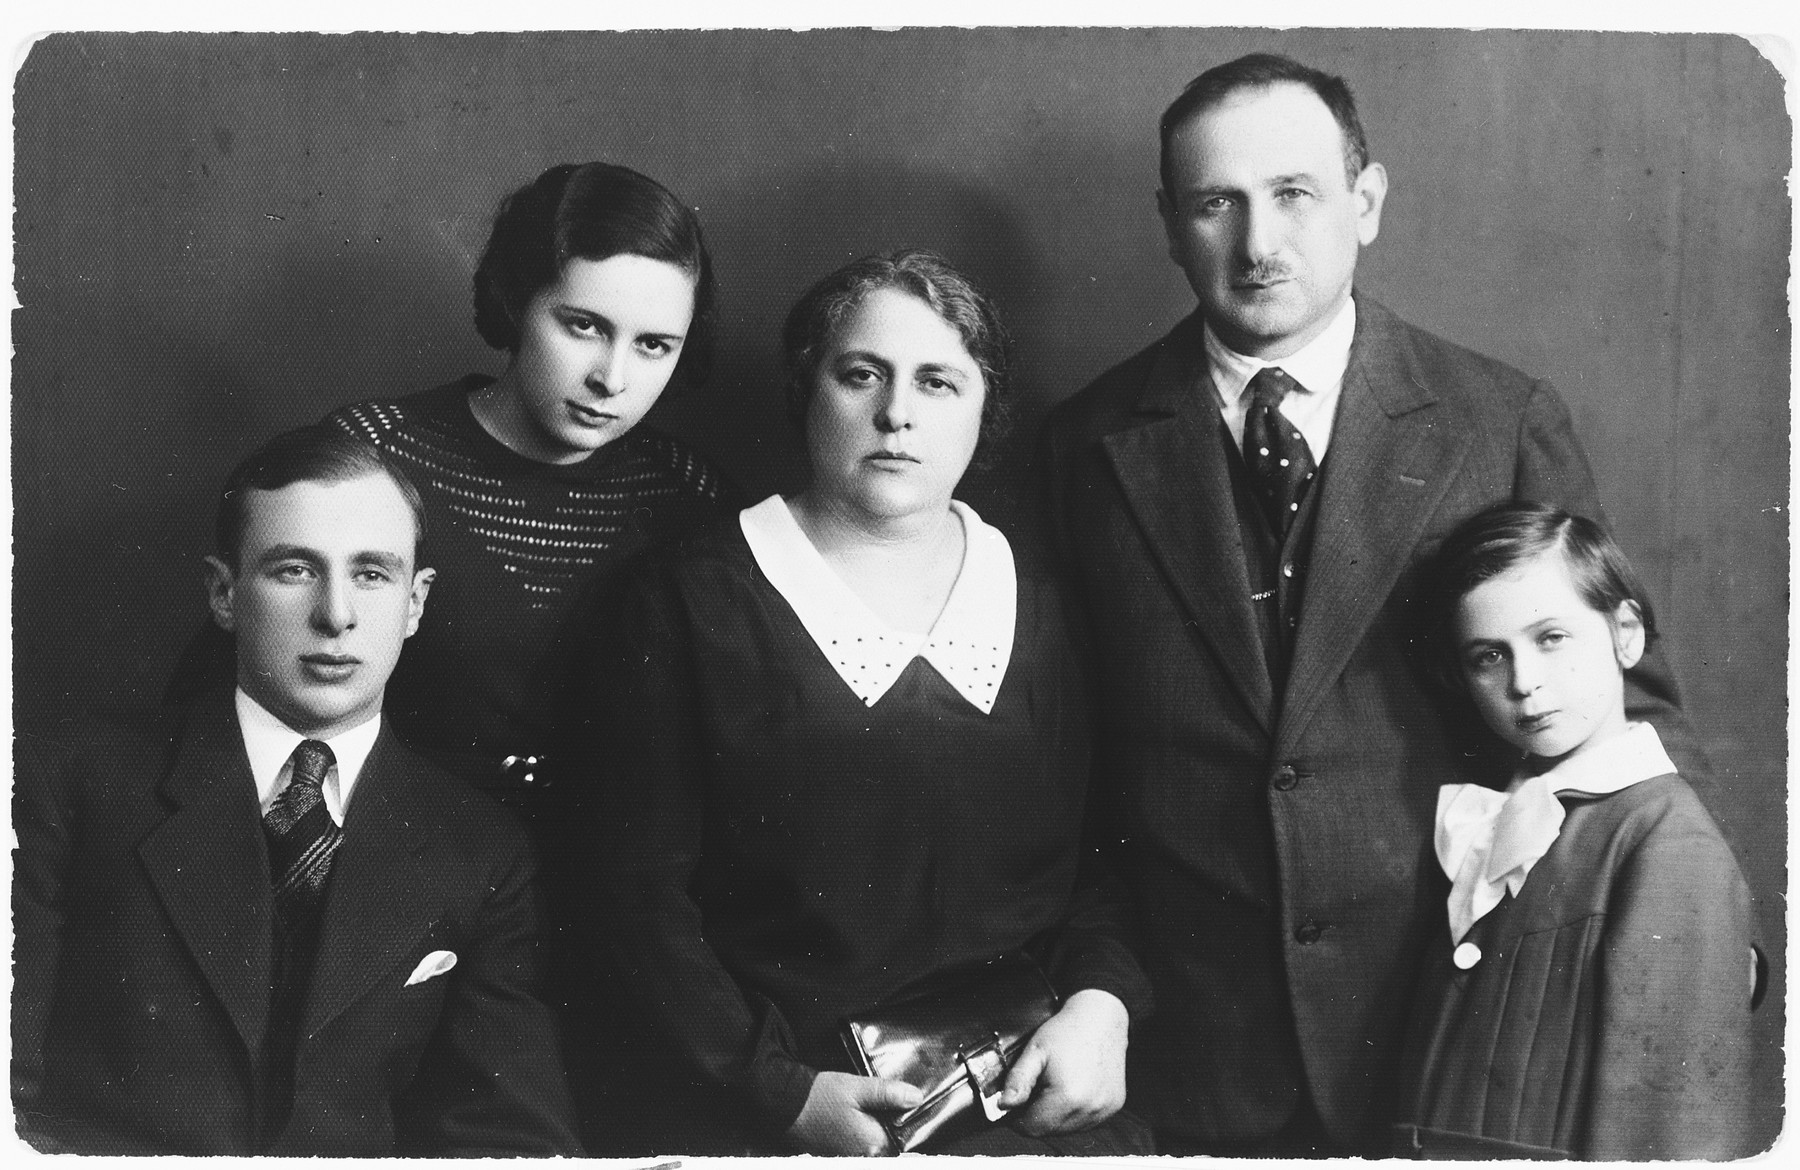 Studio portrait of the Puzerisky family in Vilna.  Pictured from left to right are: Morris, Emma, Riva, Meir and Gutta Puzerisky.